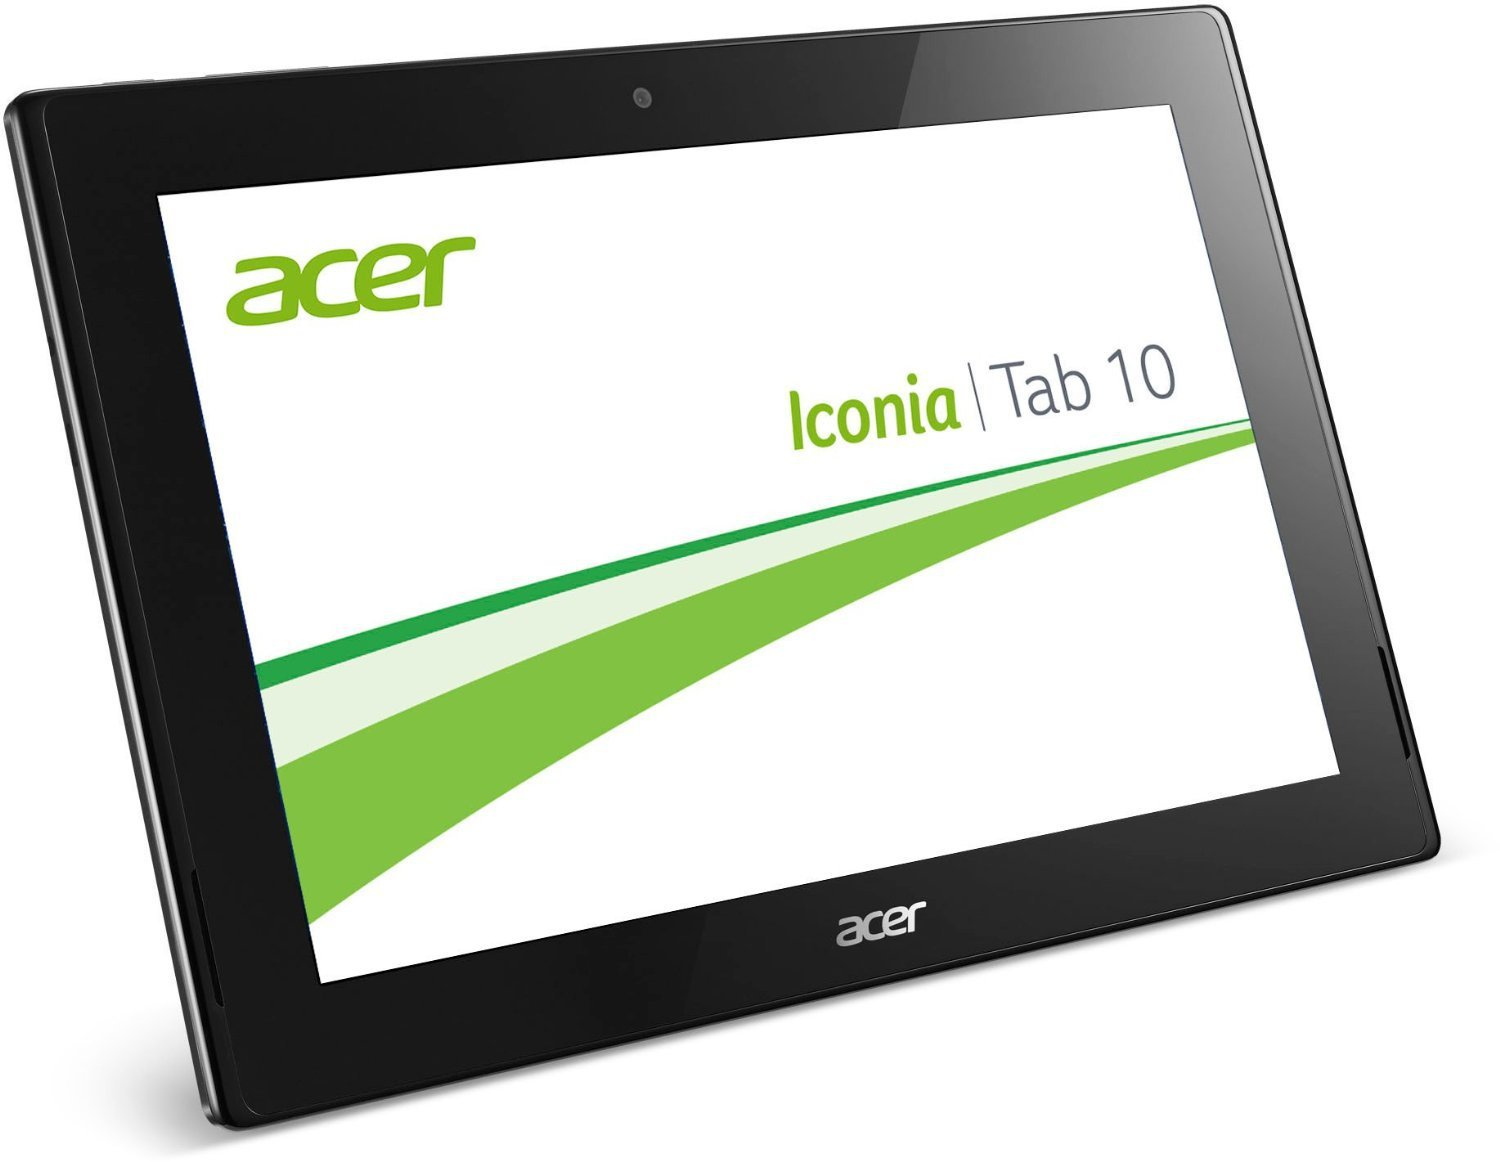 acer iconia tab 10 a3 a30 16gb schwarz test tablet pc. Black Bedroom Furniture Sets. Home Design Ideas